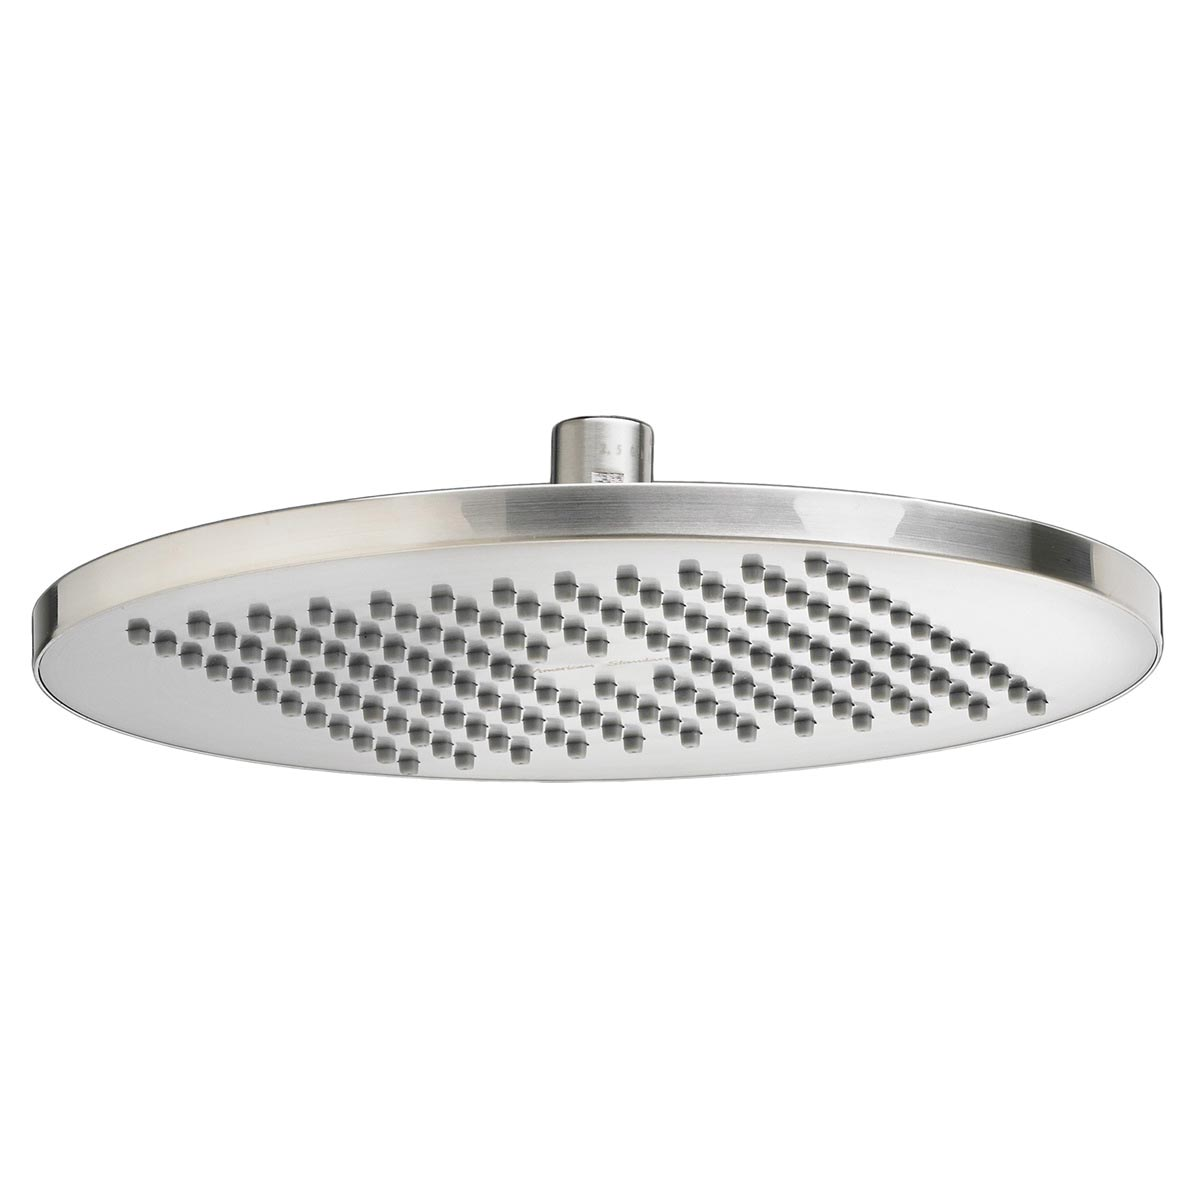 American Standard 1660683.295 Modern Showerhead Only, 2.5 gpm, 1 Spray, Ceiling Mount, 10 in Dia Head, Import